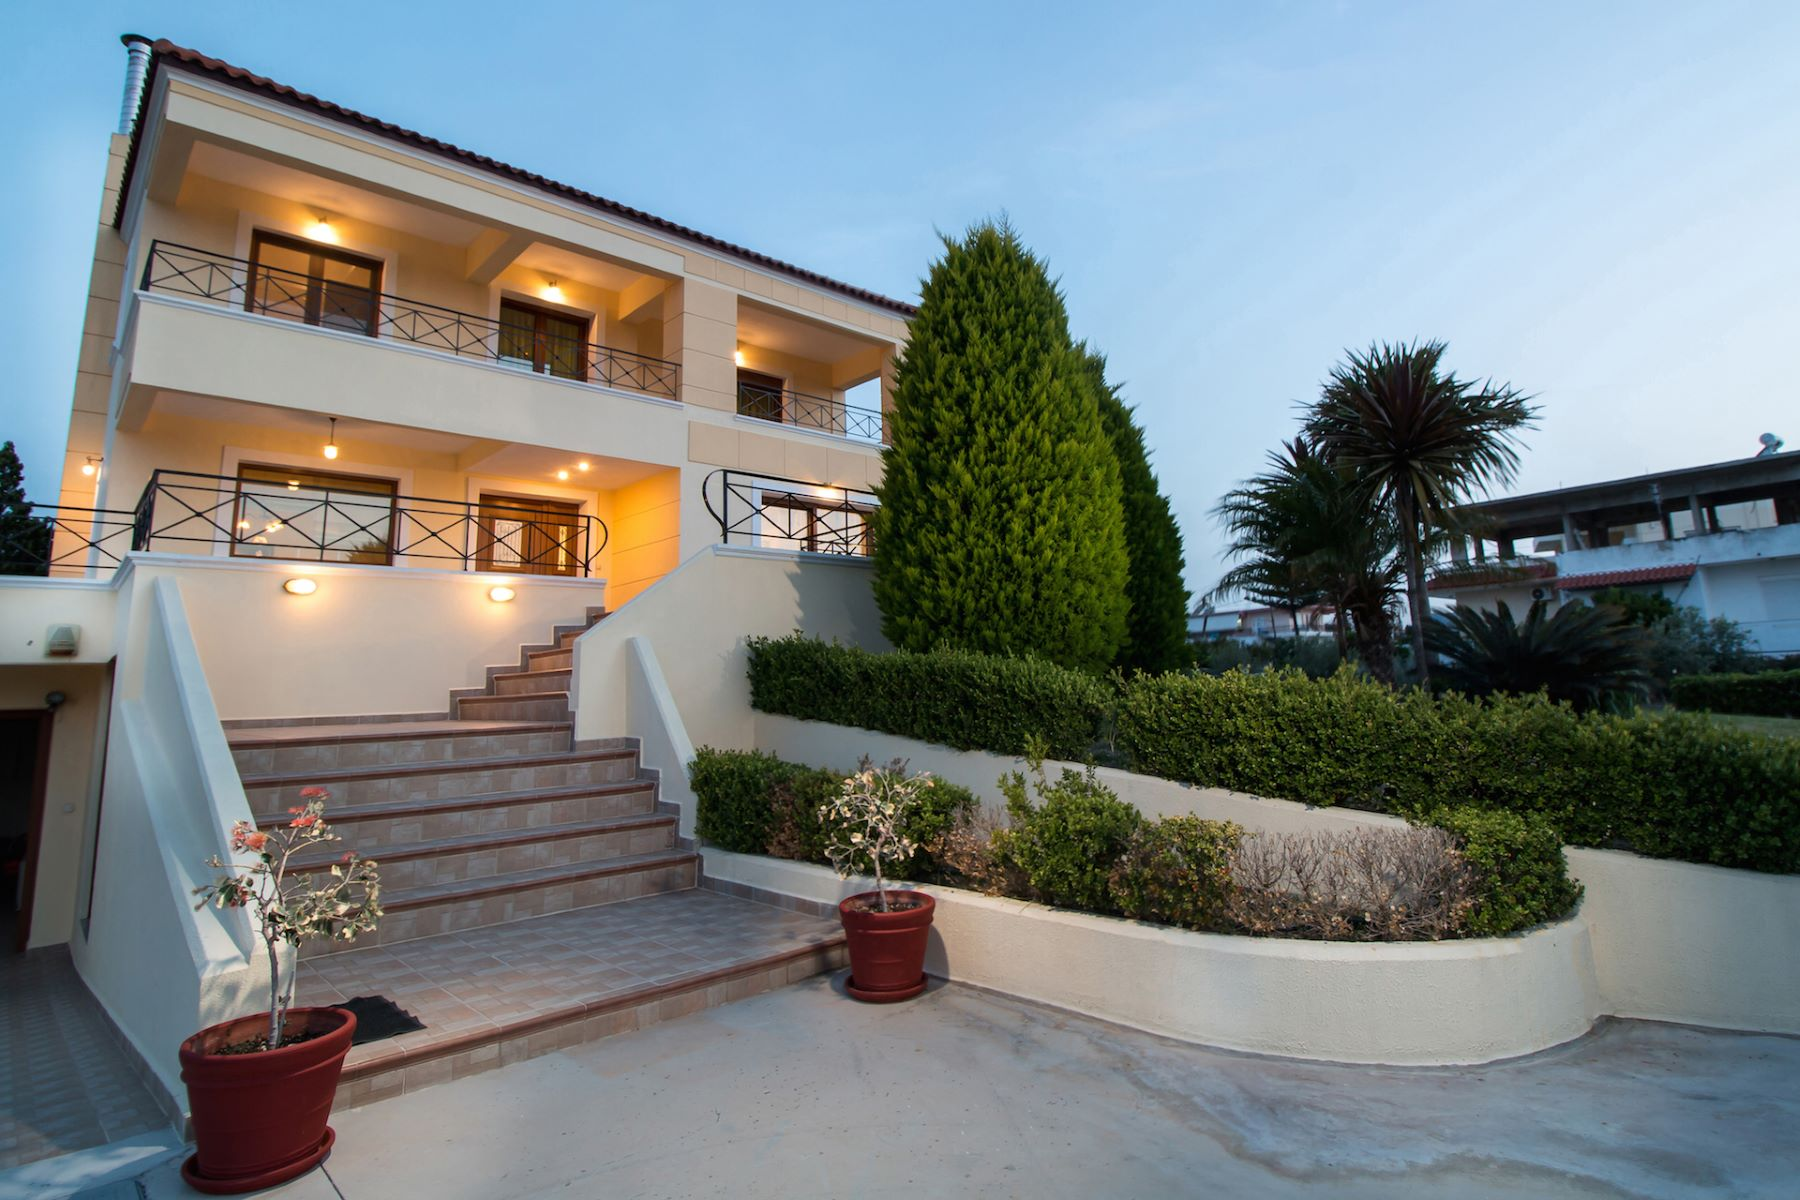 Single Family Home for Sale at Family Style Ialyssos Family Style Rhodes, Southern Aegean, 85101 Greece